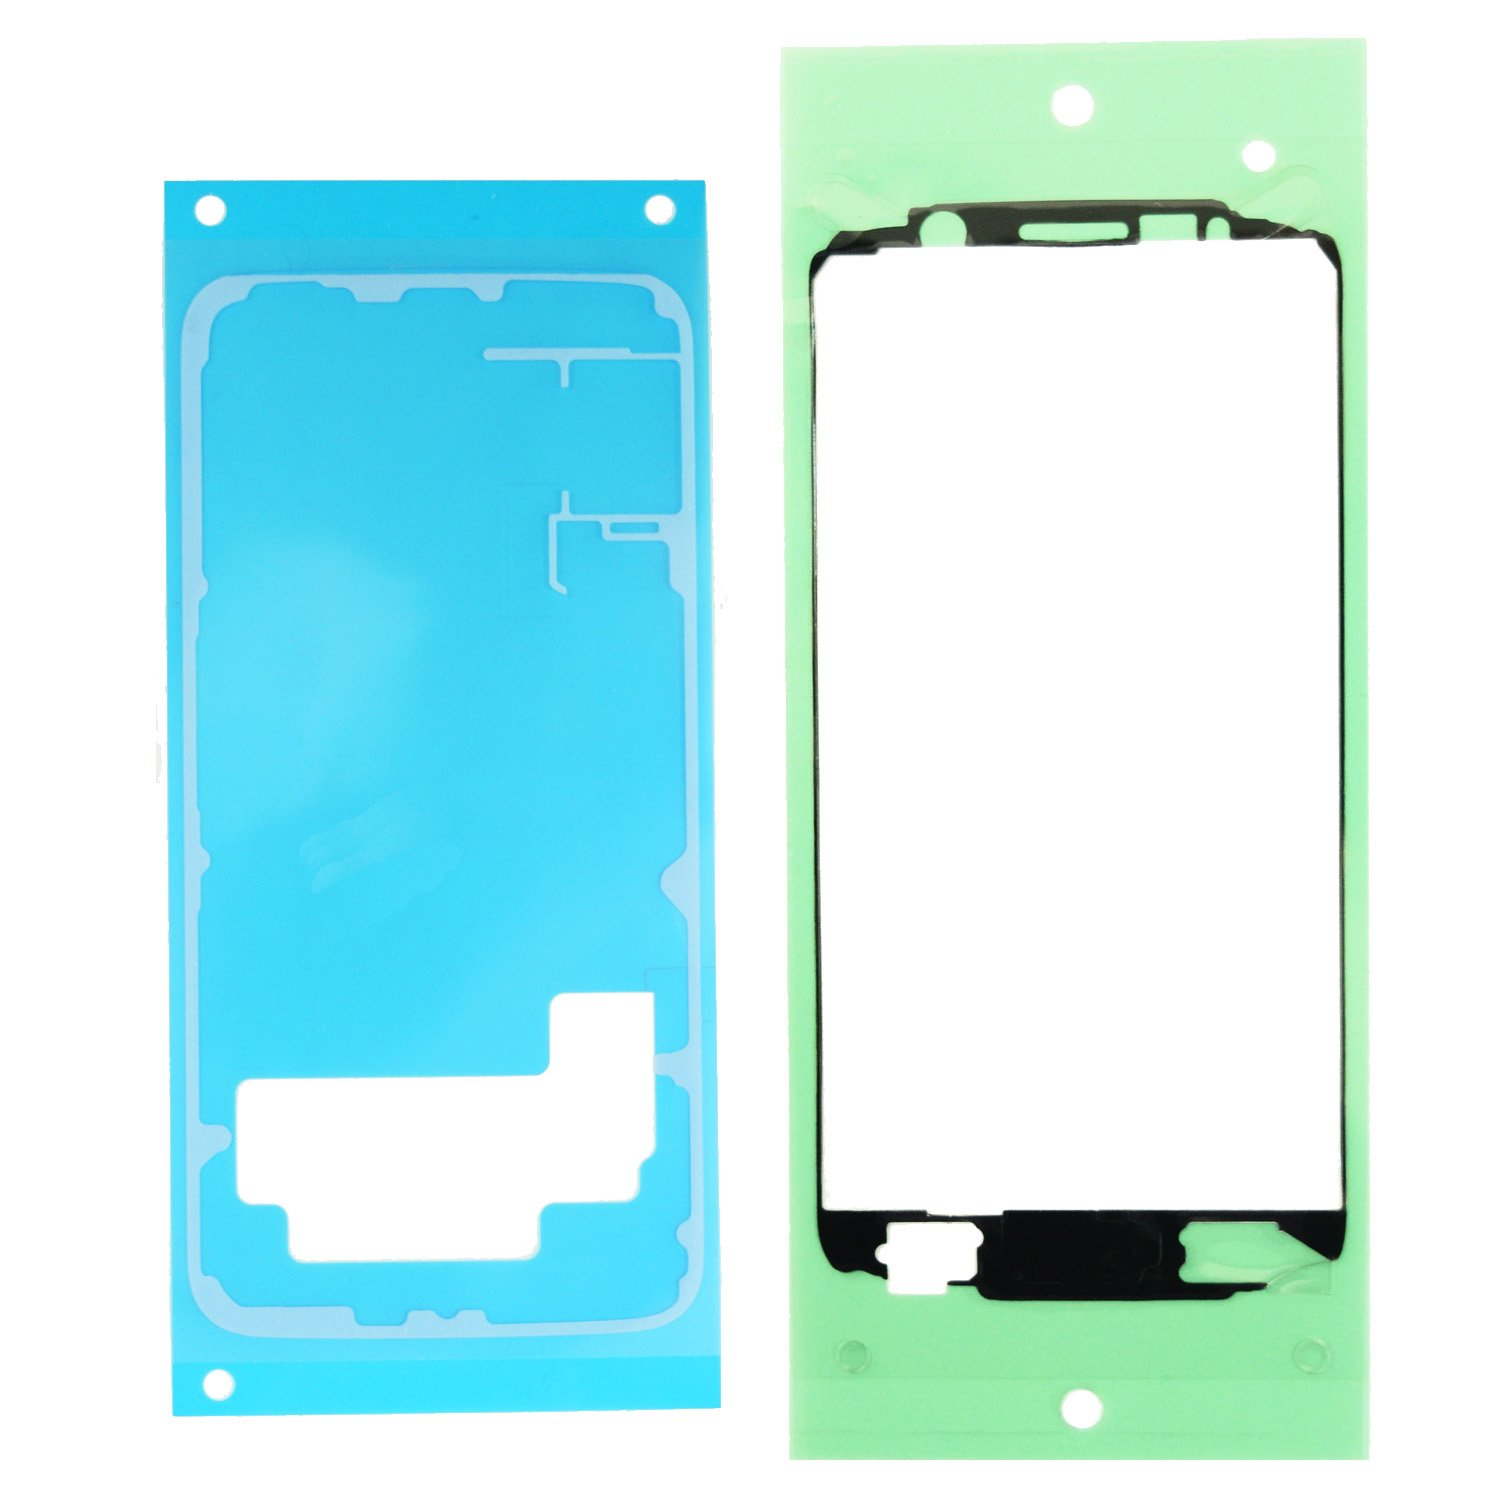 KR-NET Easy2Fix LCD Touch Screen Digitizer Assembly Tool Kit for Samsung Galaxy S6 G920 (Blue) by KR-NET (Image #8)